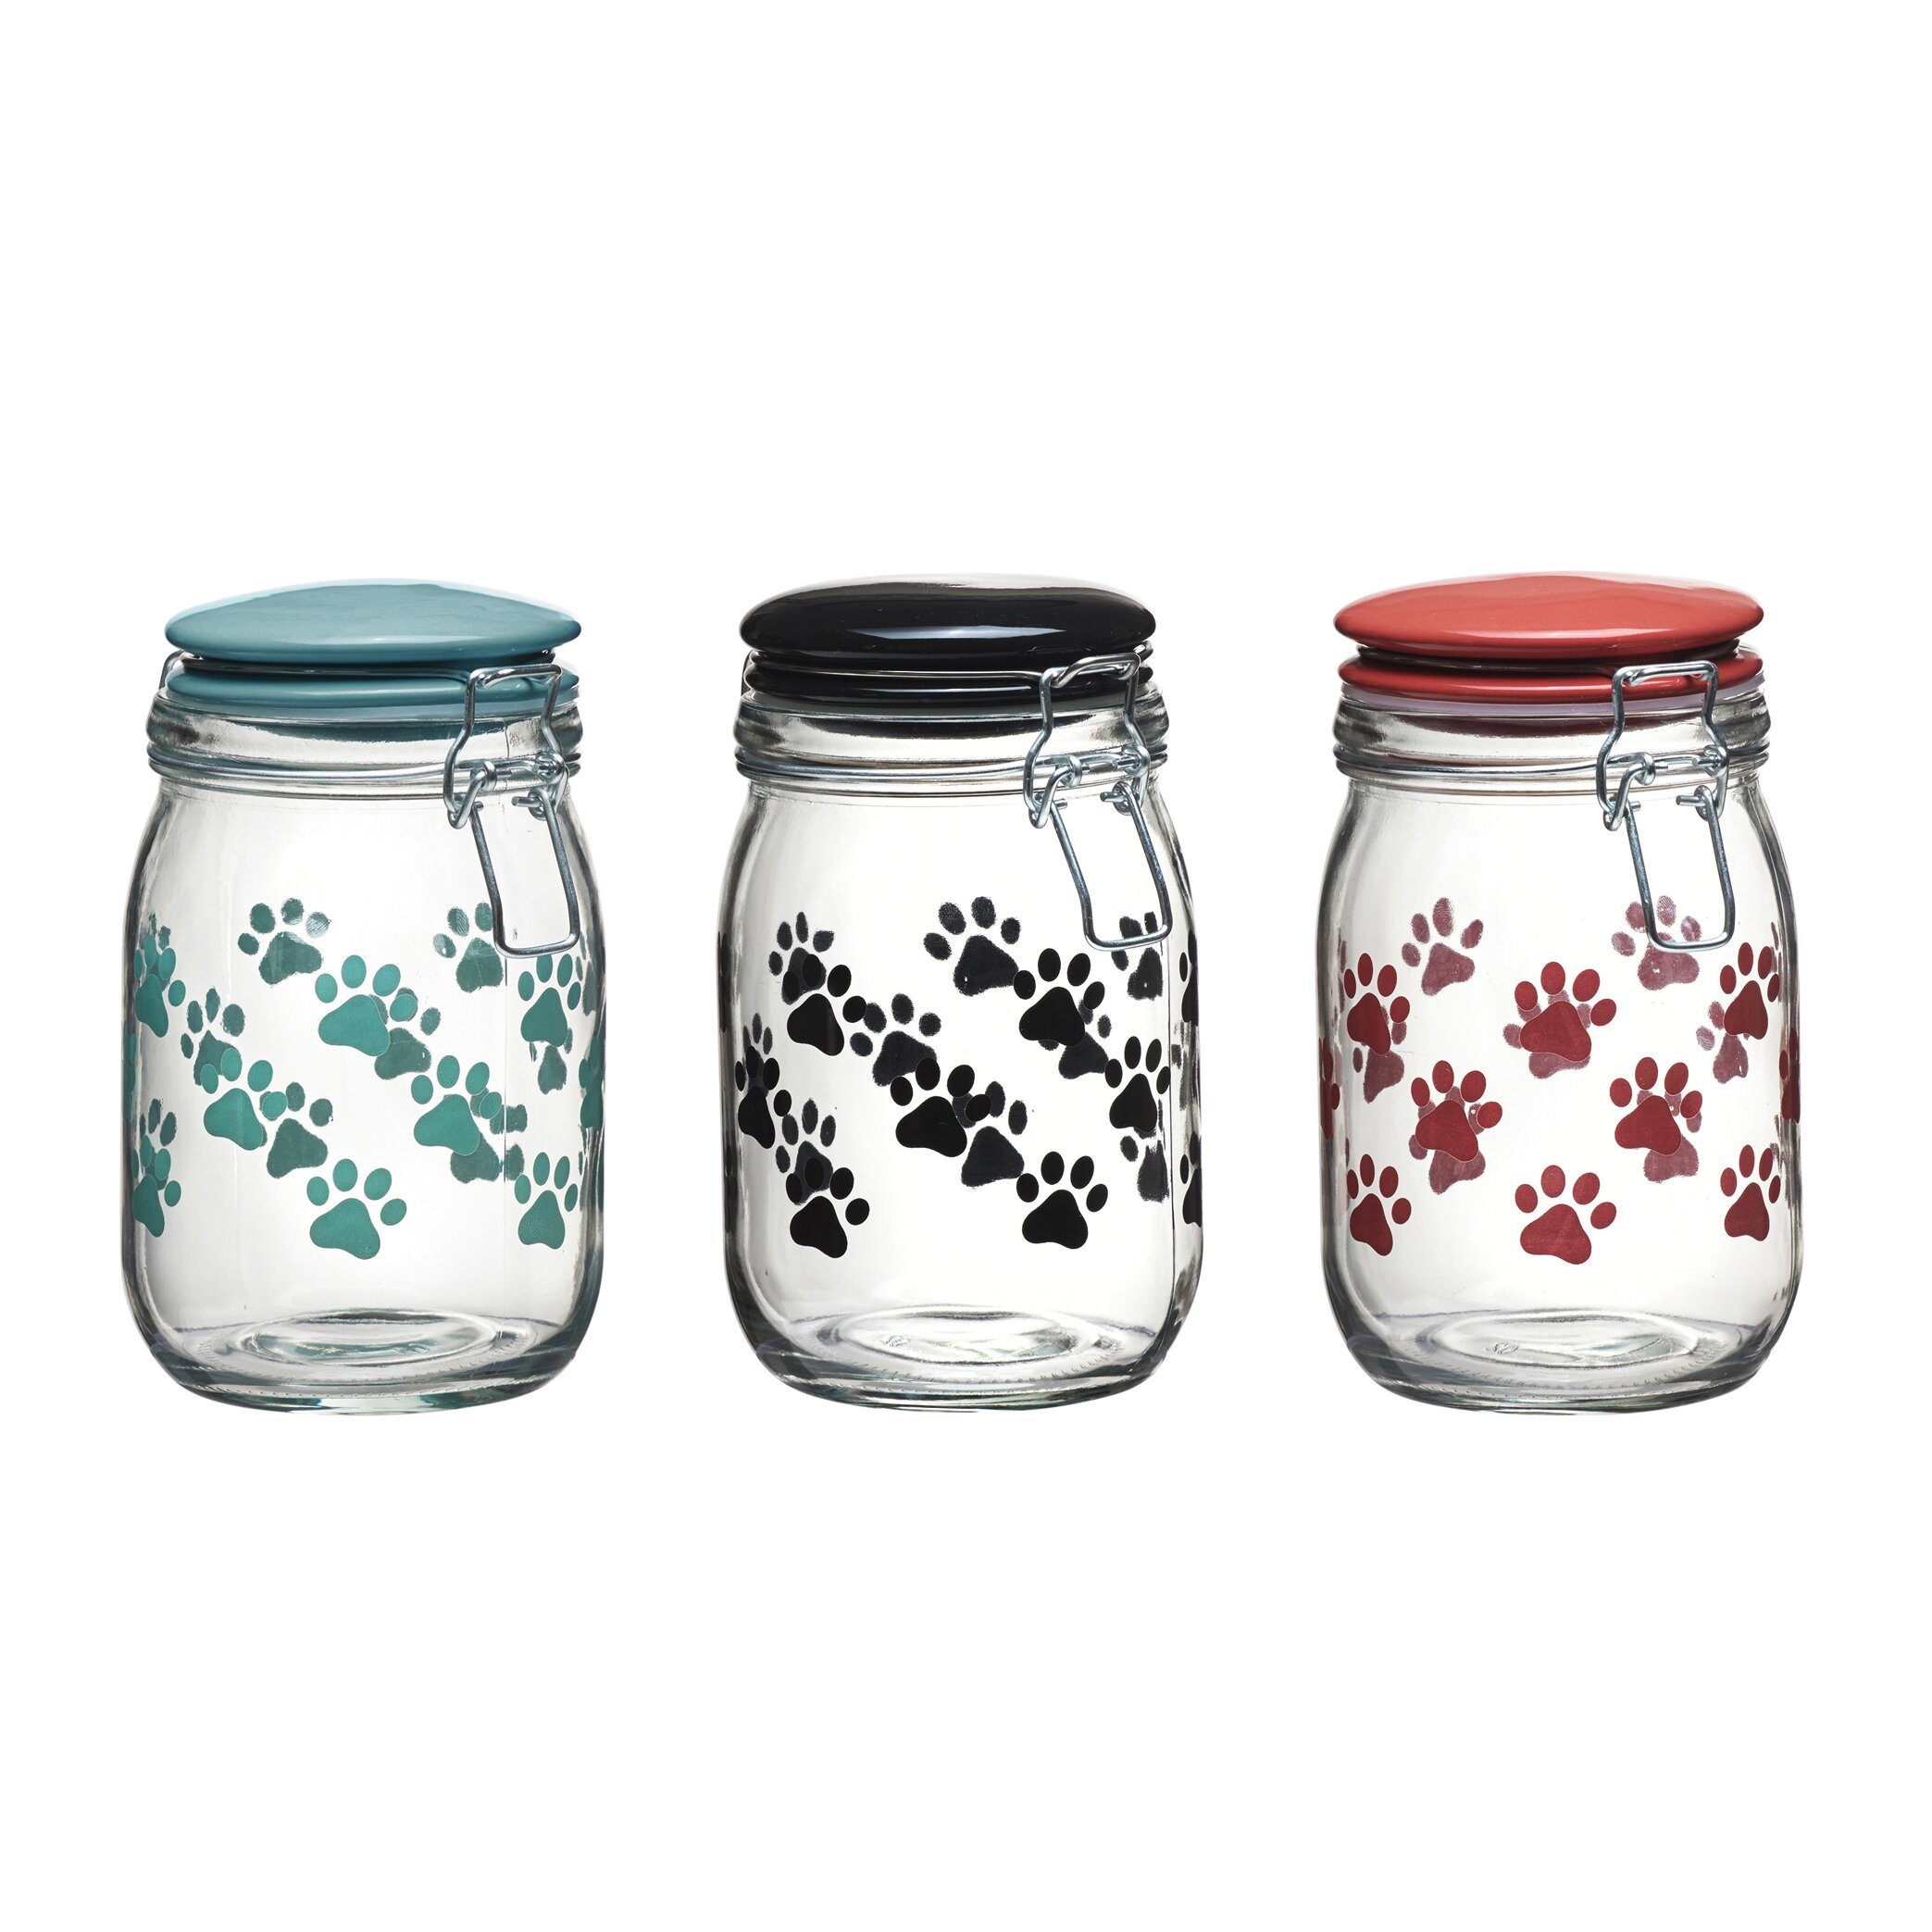 Country Kitchen Dog Treats Pet Treat Kitchen Canisters Jars Youll Love Wayfair